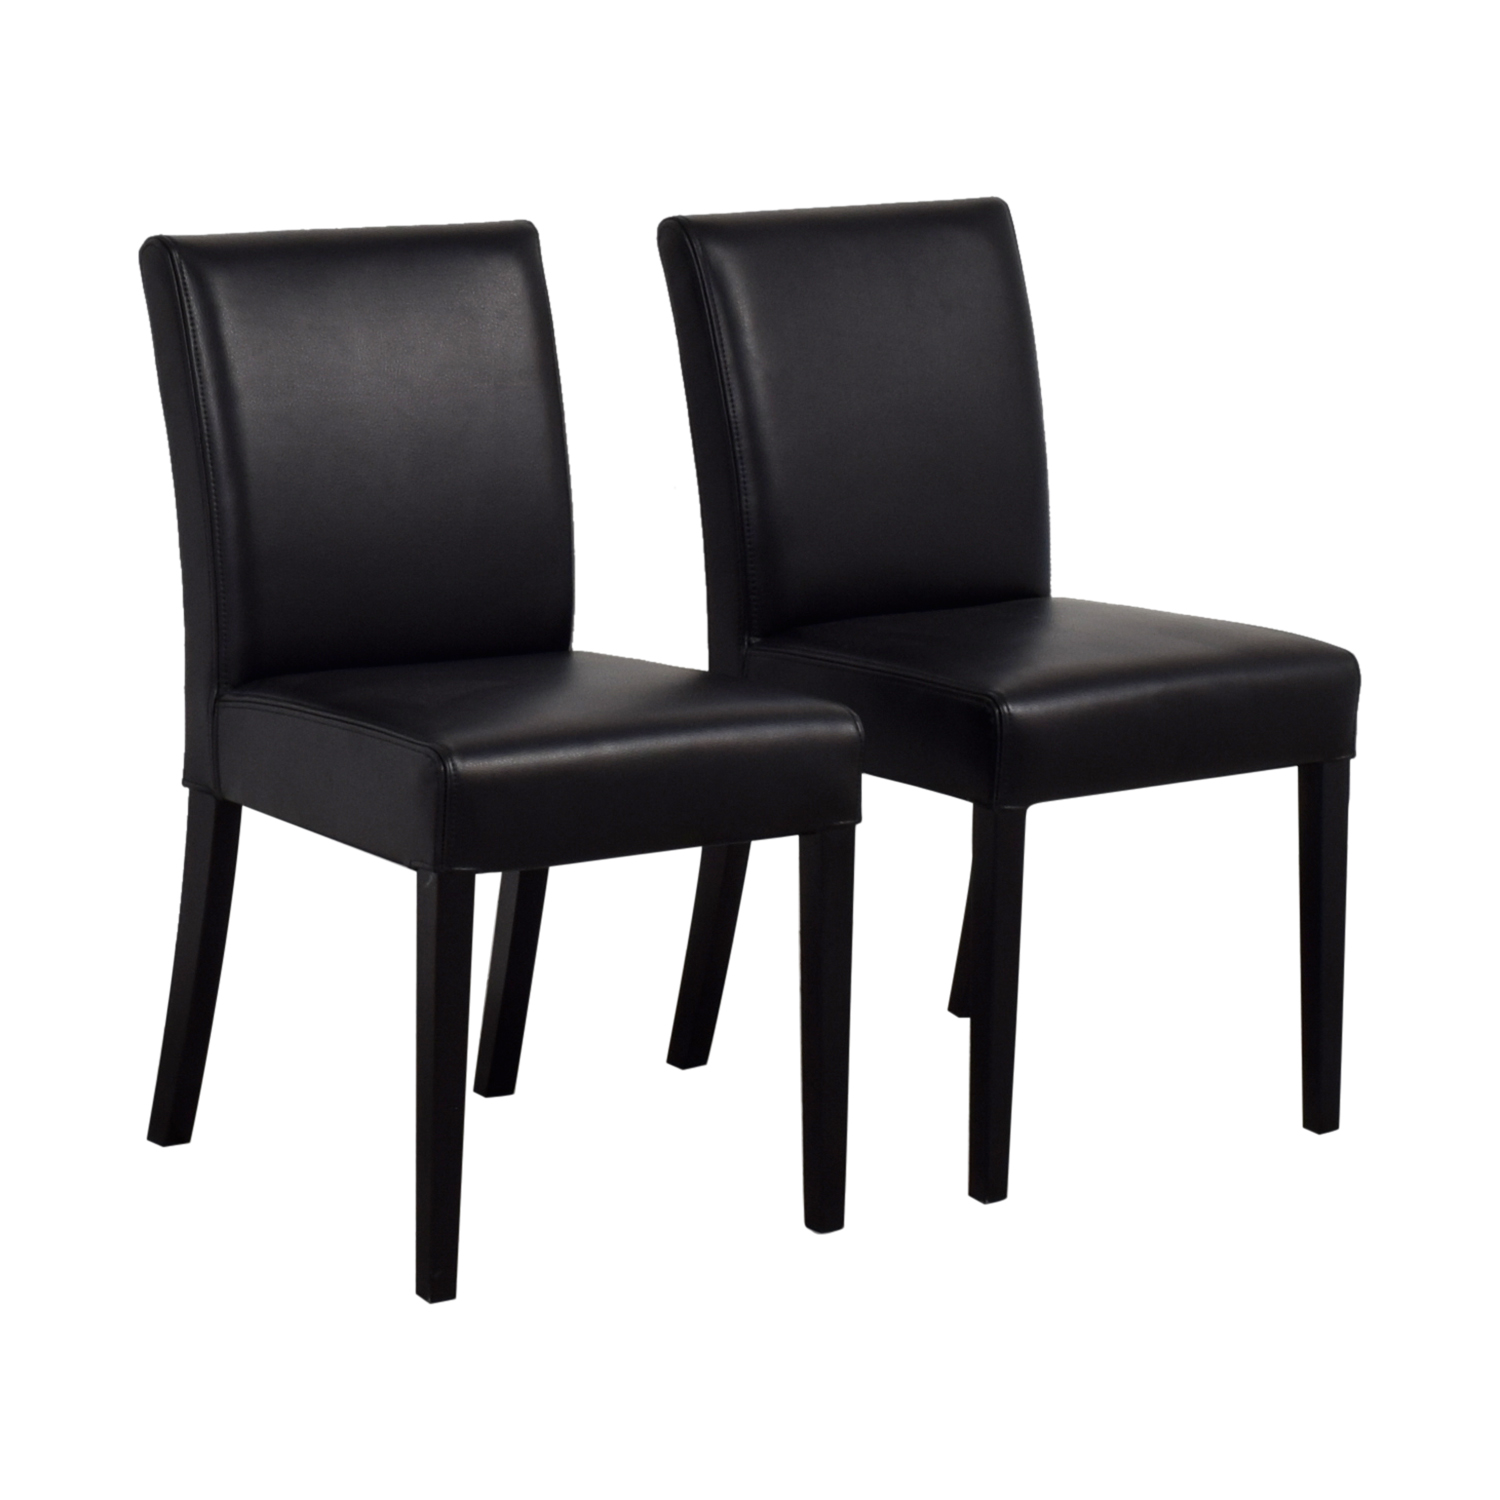 Black Barrel Chair 80 Off Crate And Barrel Crate And Barrel Lowe Black Leather